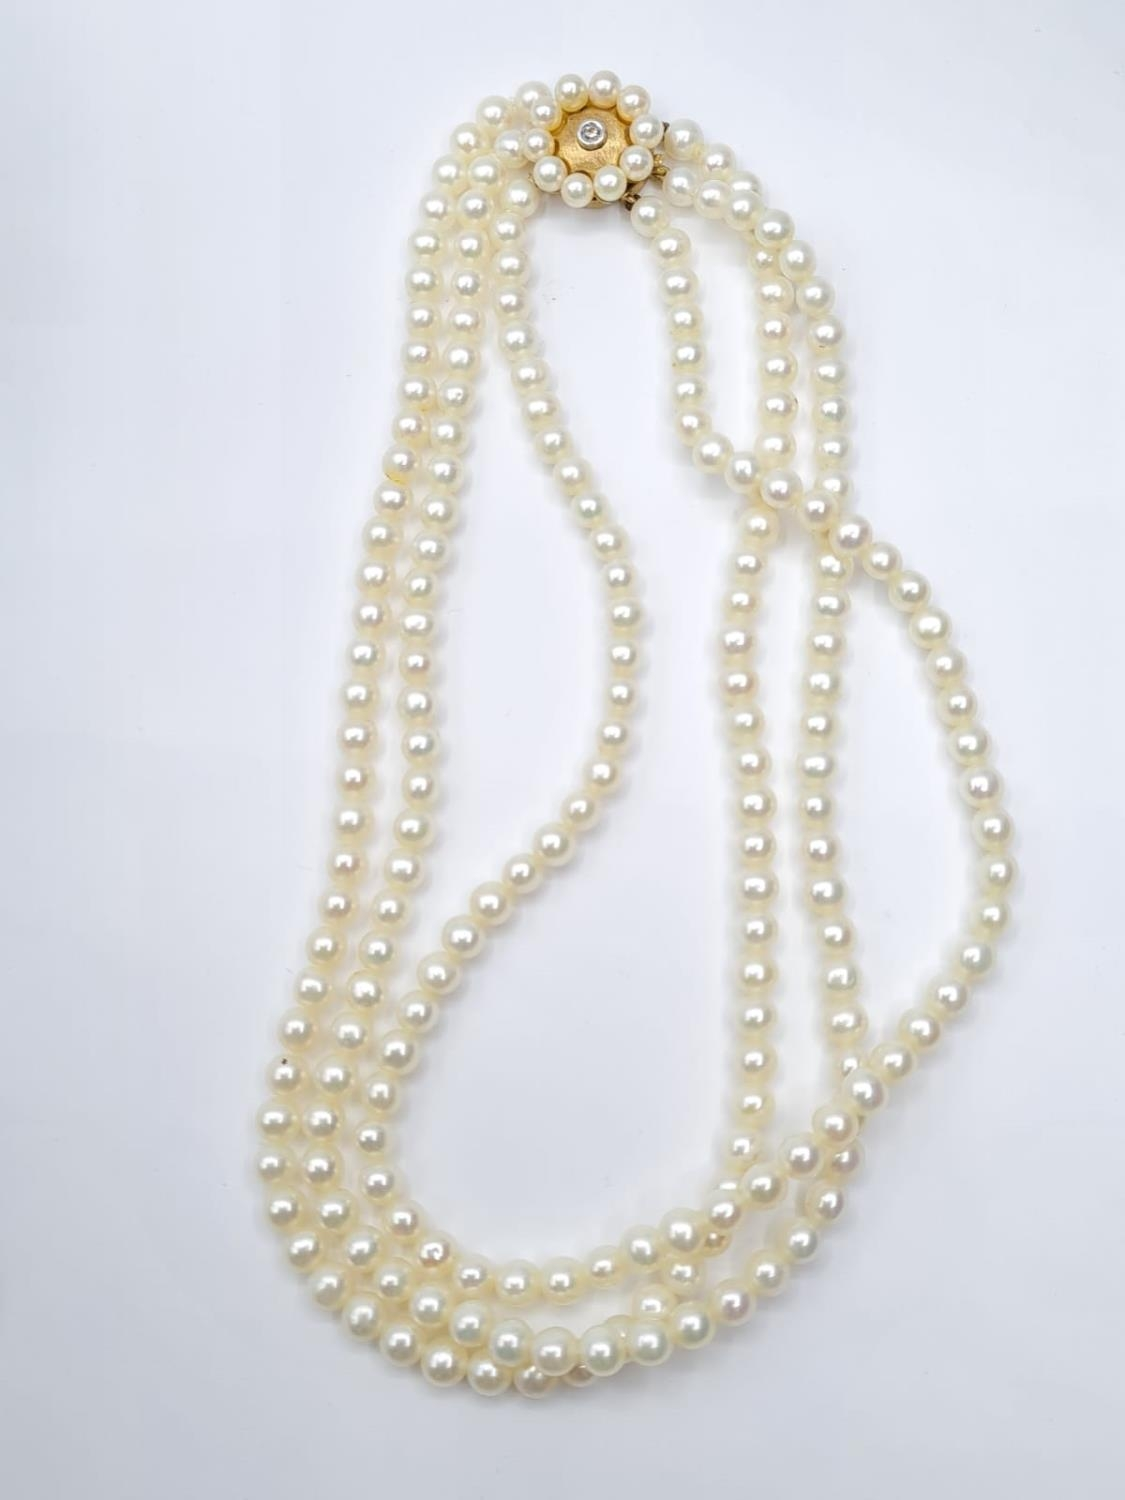 3 rows of cultured pearls choker necklace set in 9ct gold clasp, weight 45g and 33cm long approx